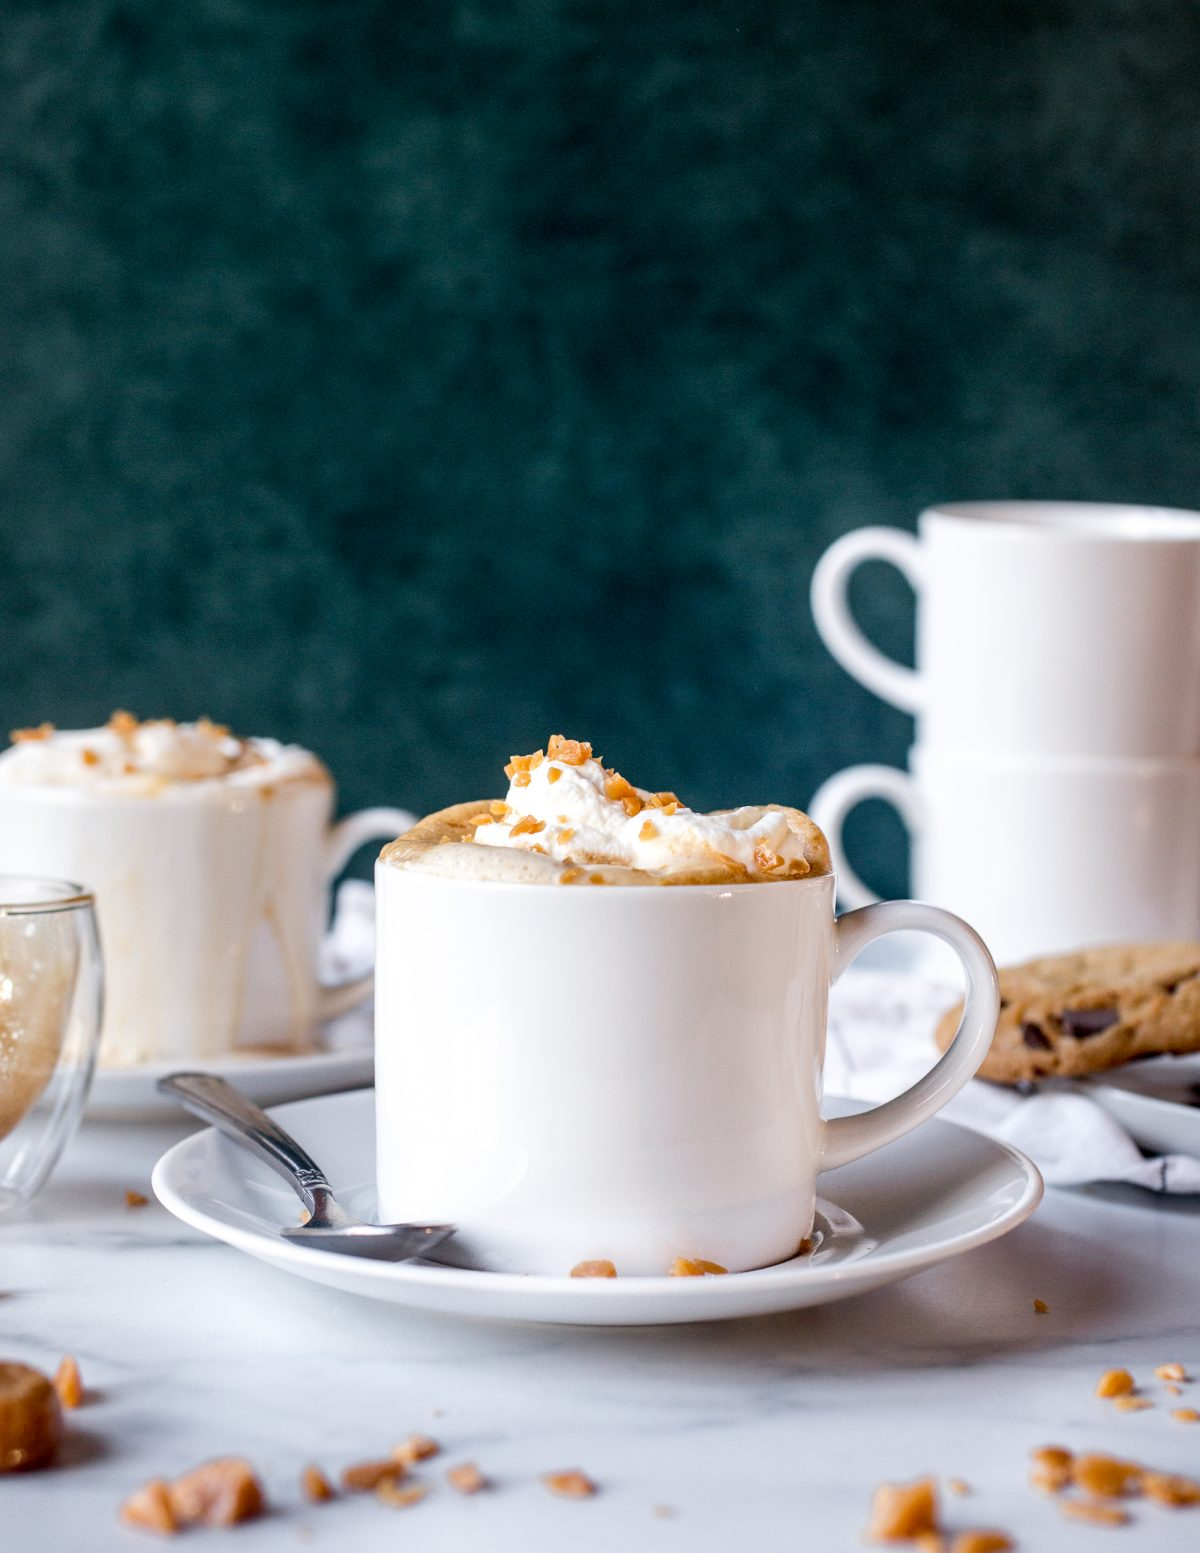 A frothy caramel latte in a white mug on a saucer surrounded by caramel hard candies